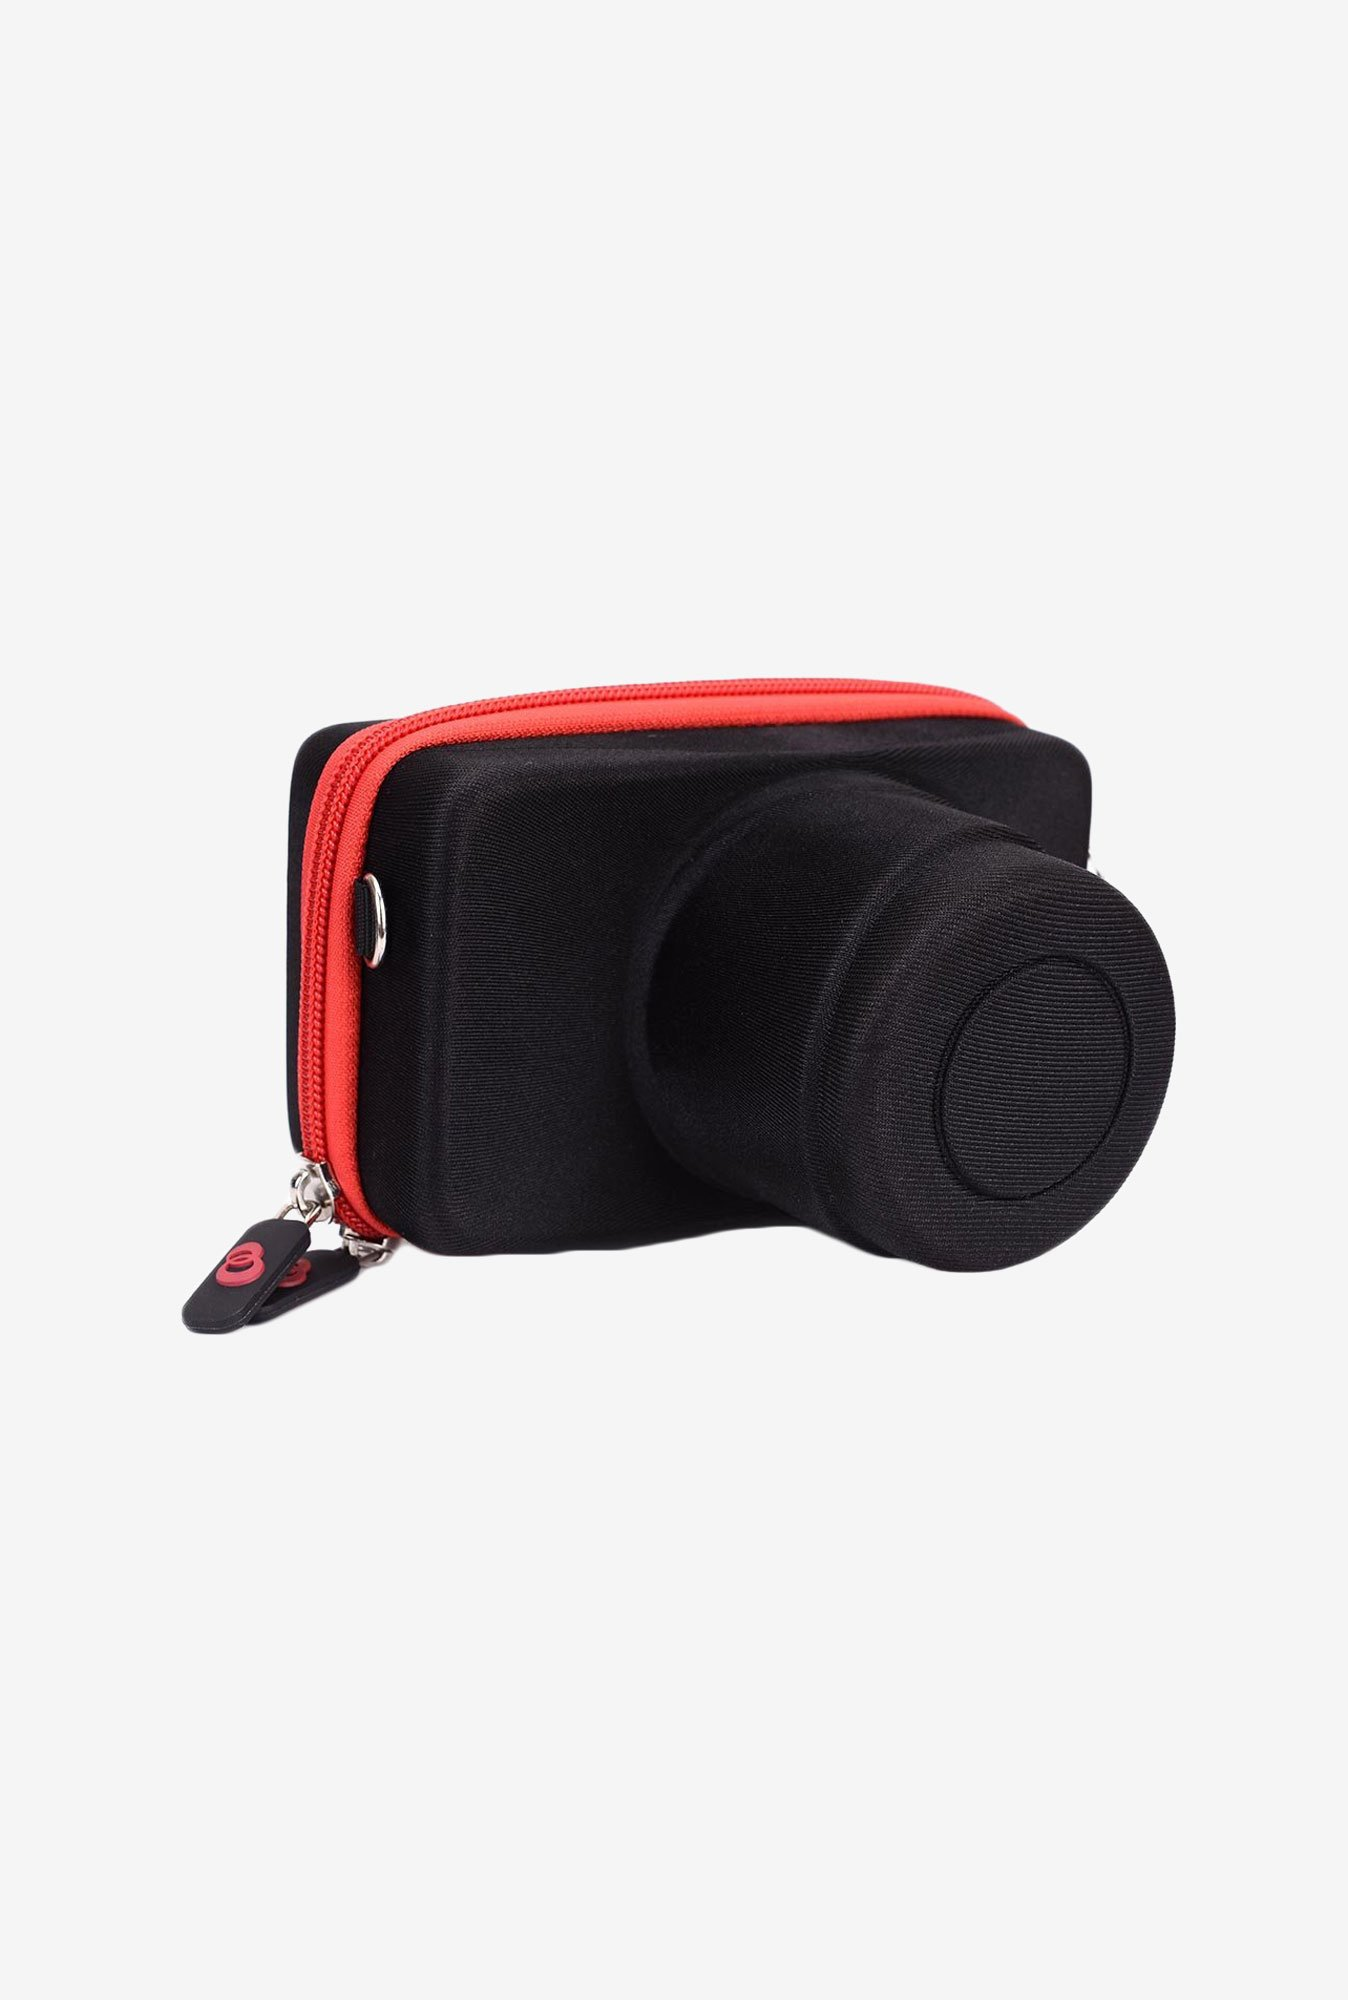 Kroo Kannan FSLRHDR1-6484 Compact System Camera case (Red)